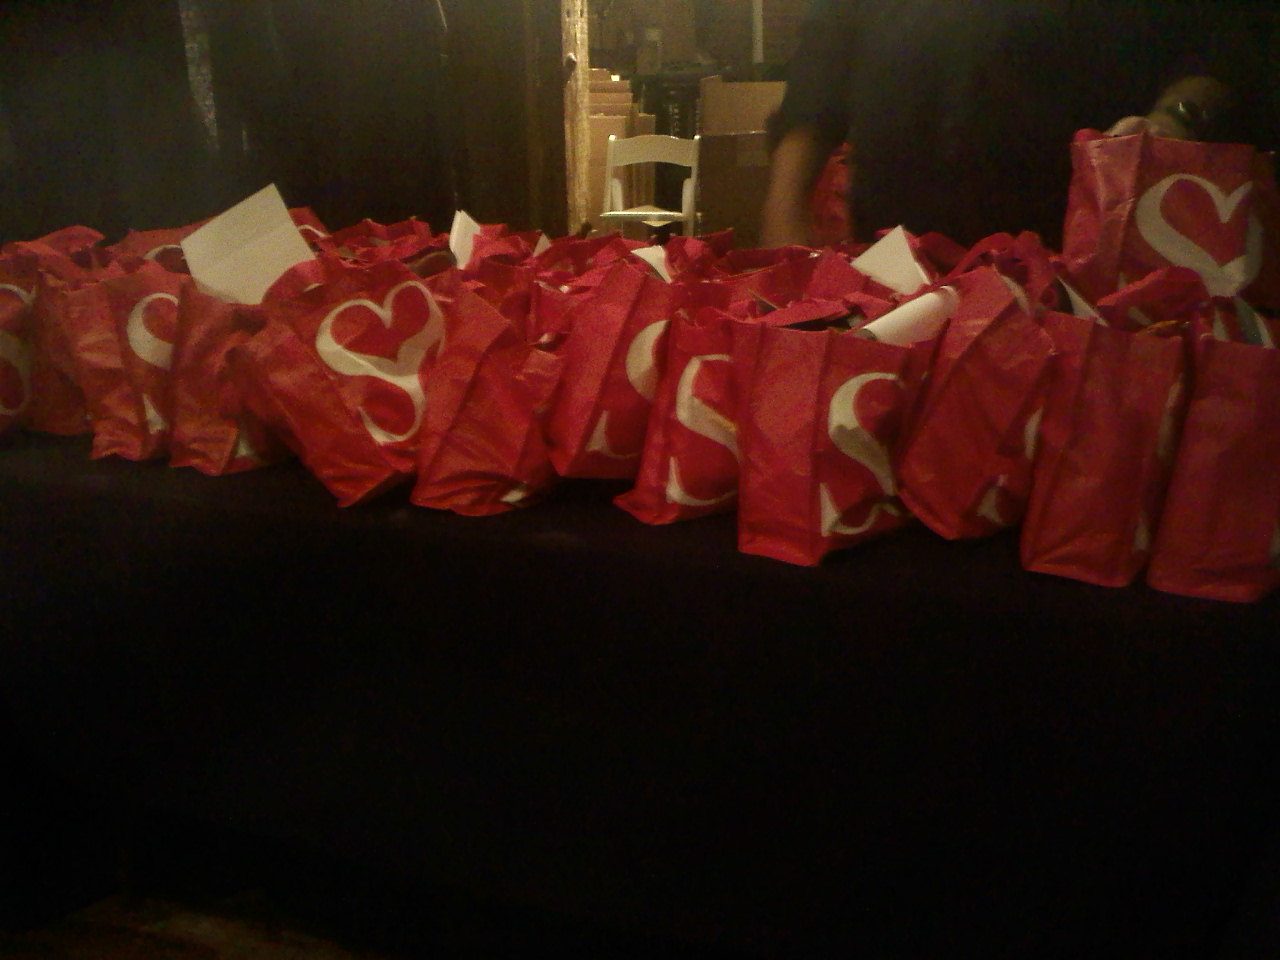 c53a15123e9d Shecky s bags..Want to get your own goodie bag  Register at sheckys.com!